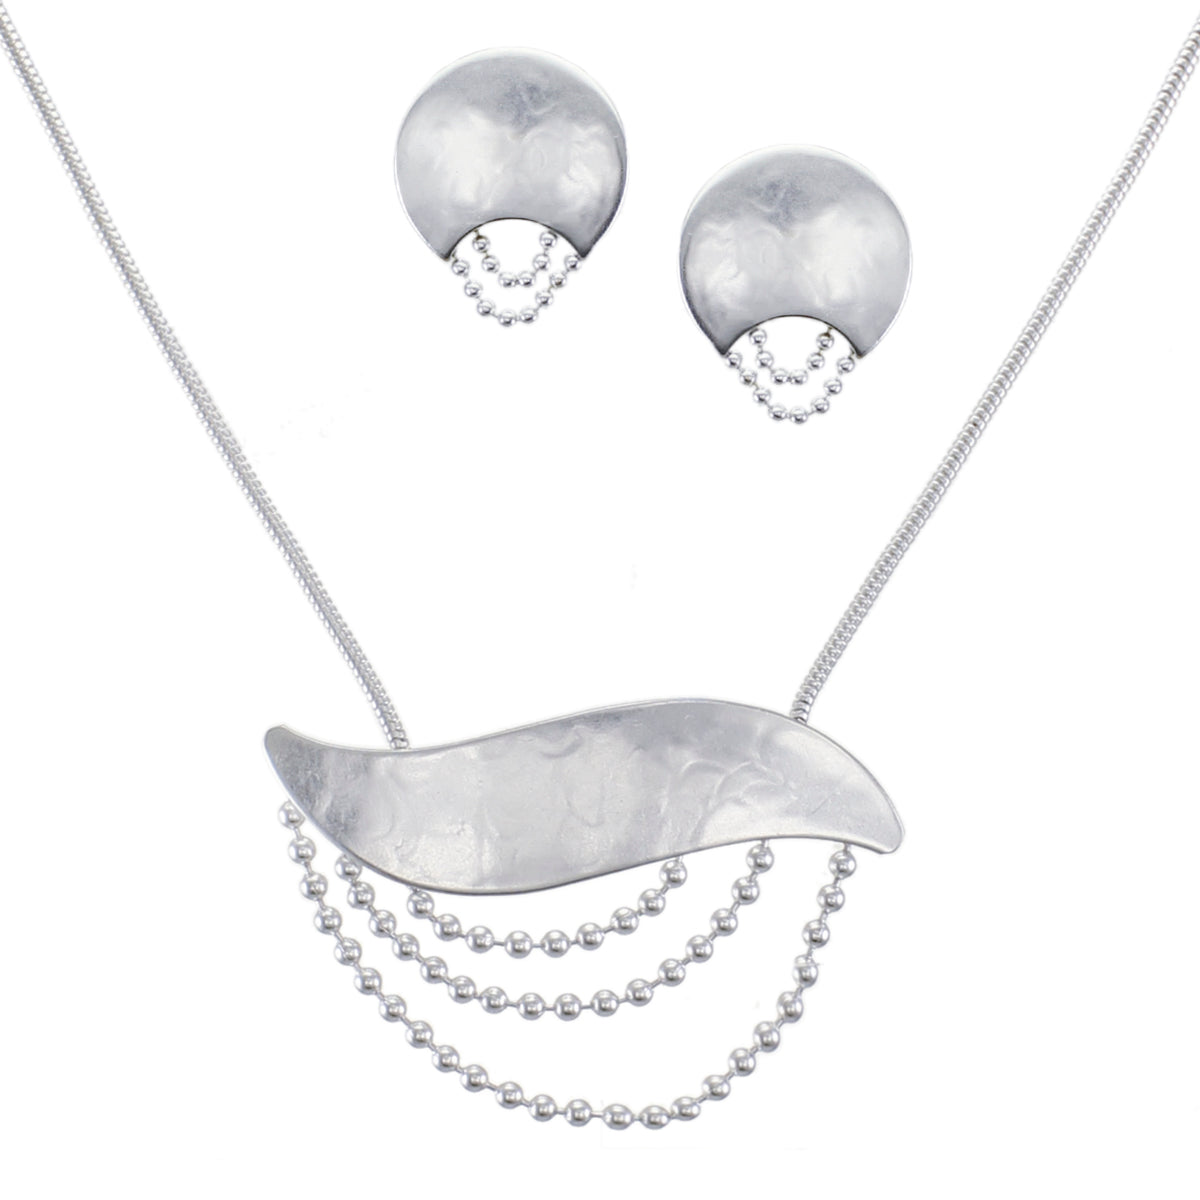 Modern Draped Matching Set - Silver Ball Chain Necklace and Post or Clip Earrings